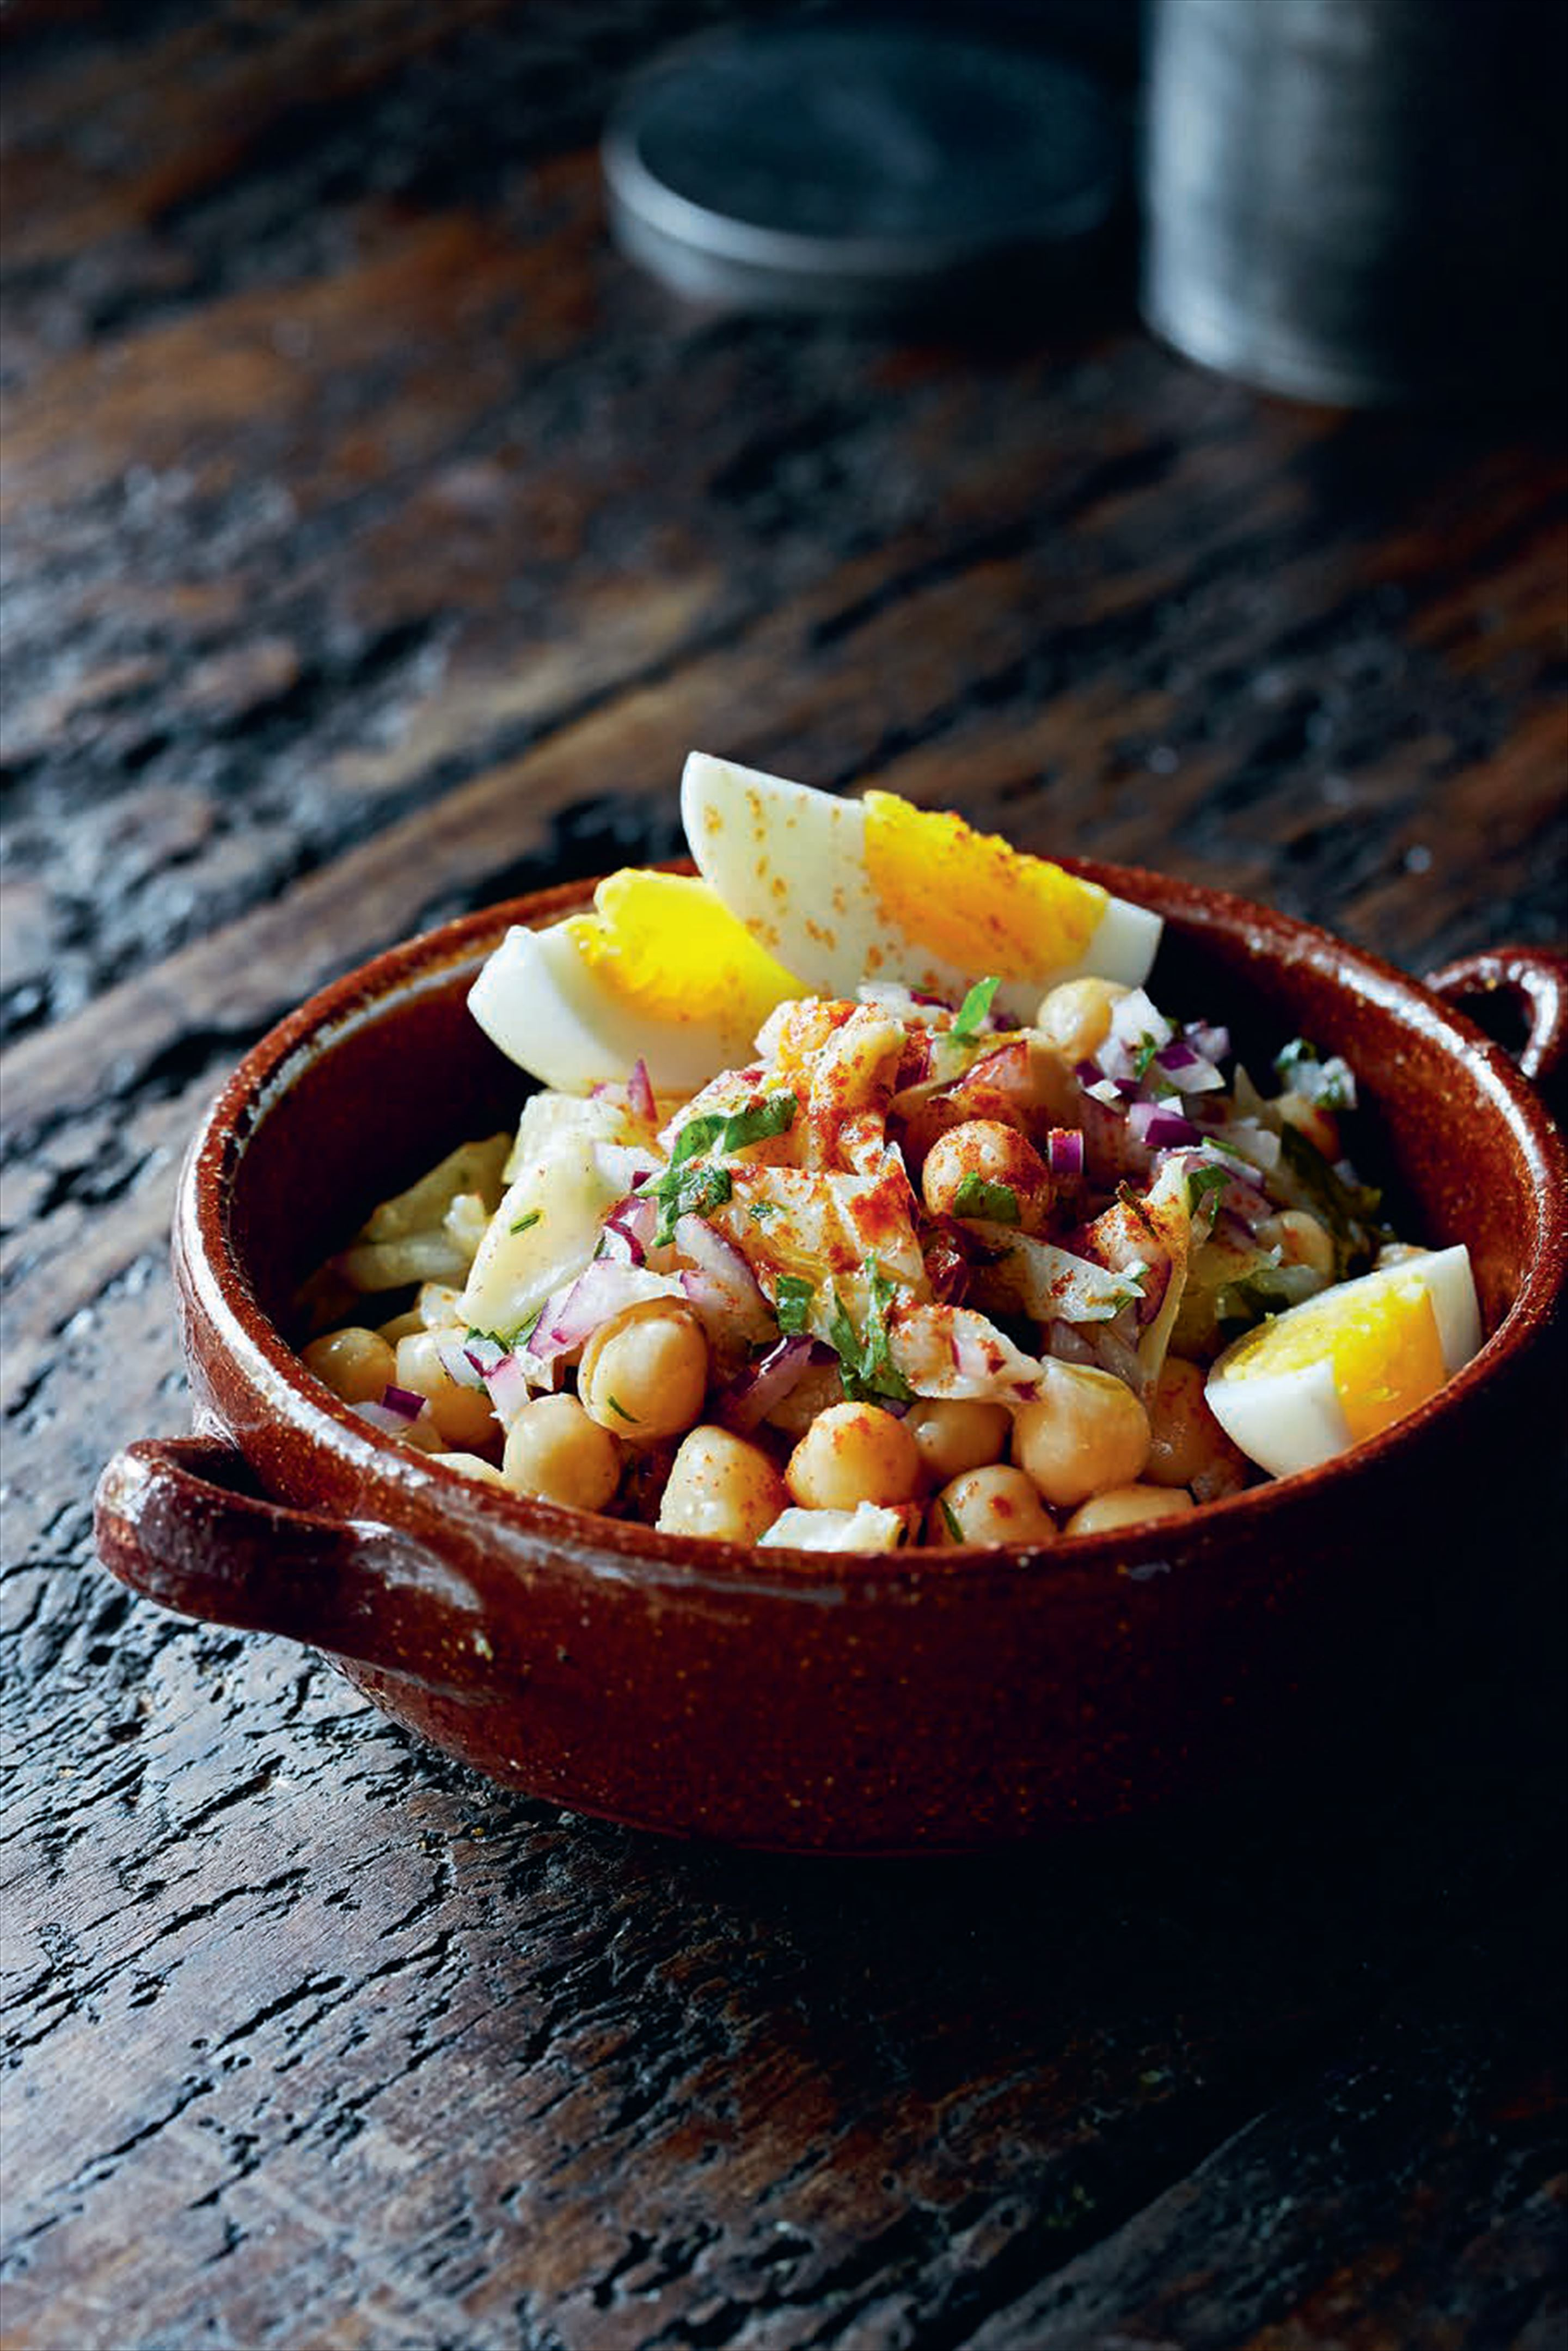 Salt cod & chickpea salad